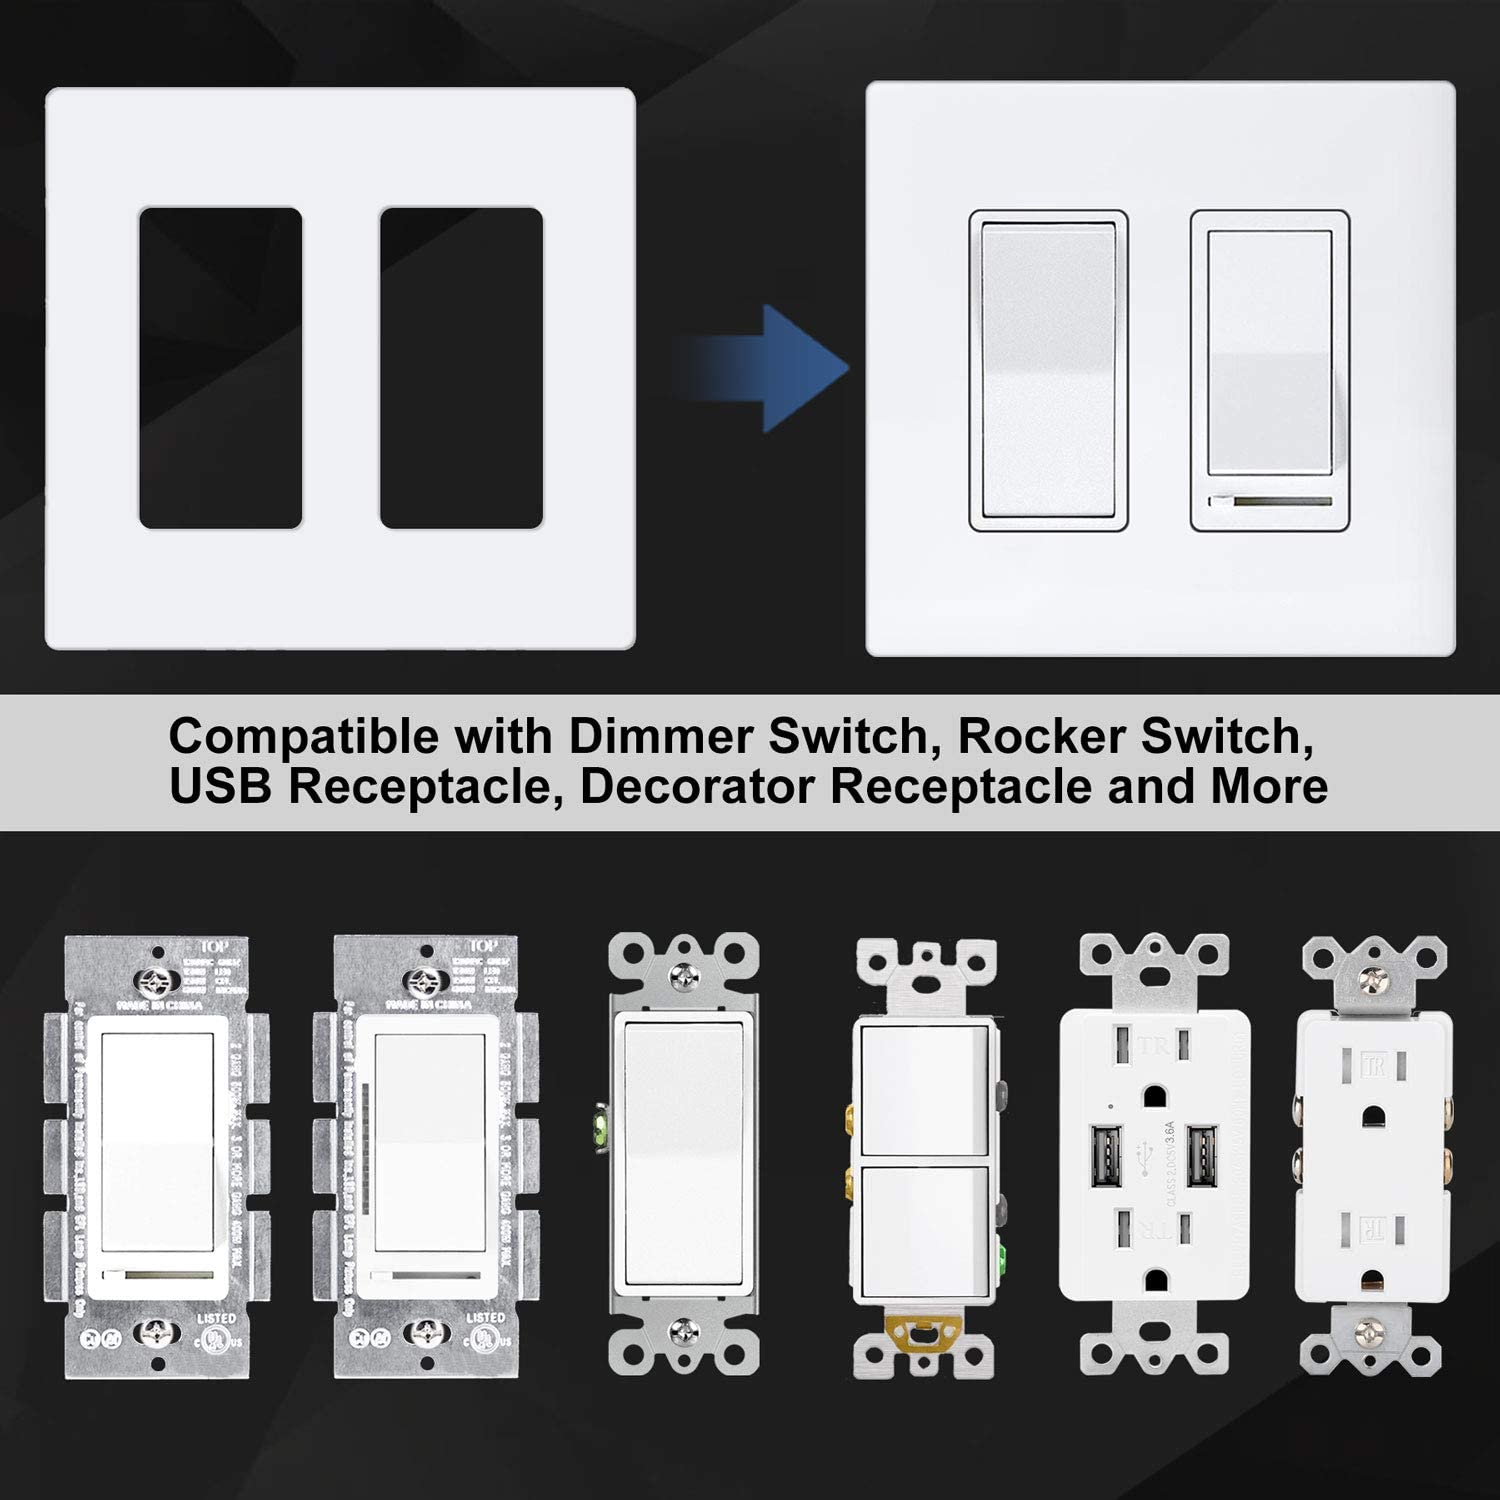 """[5 Pack] BESTTEN 2-Gang Screwless Wall Plate, USWP6 Snow White Series, Decorator Outlet Cover, 4.69"""" x 4.73"""", for Light Switch, Dimmer, GFCI, USB Receptacle, UL Listed - -"""